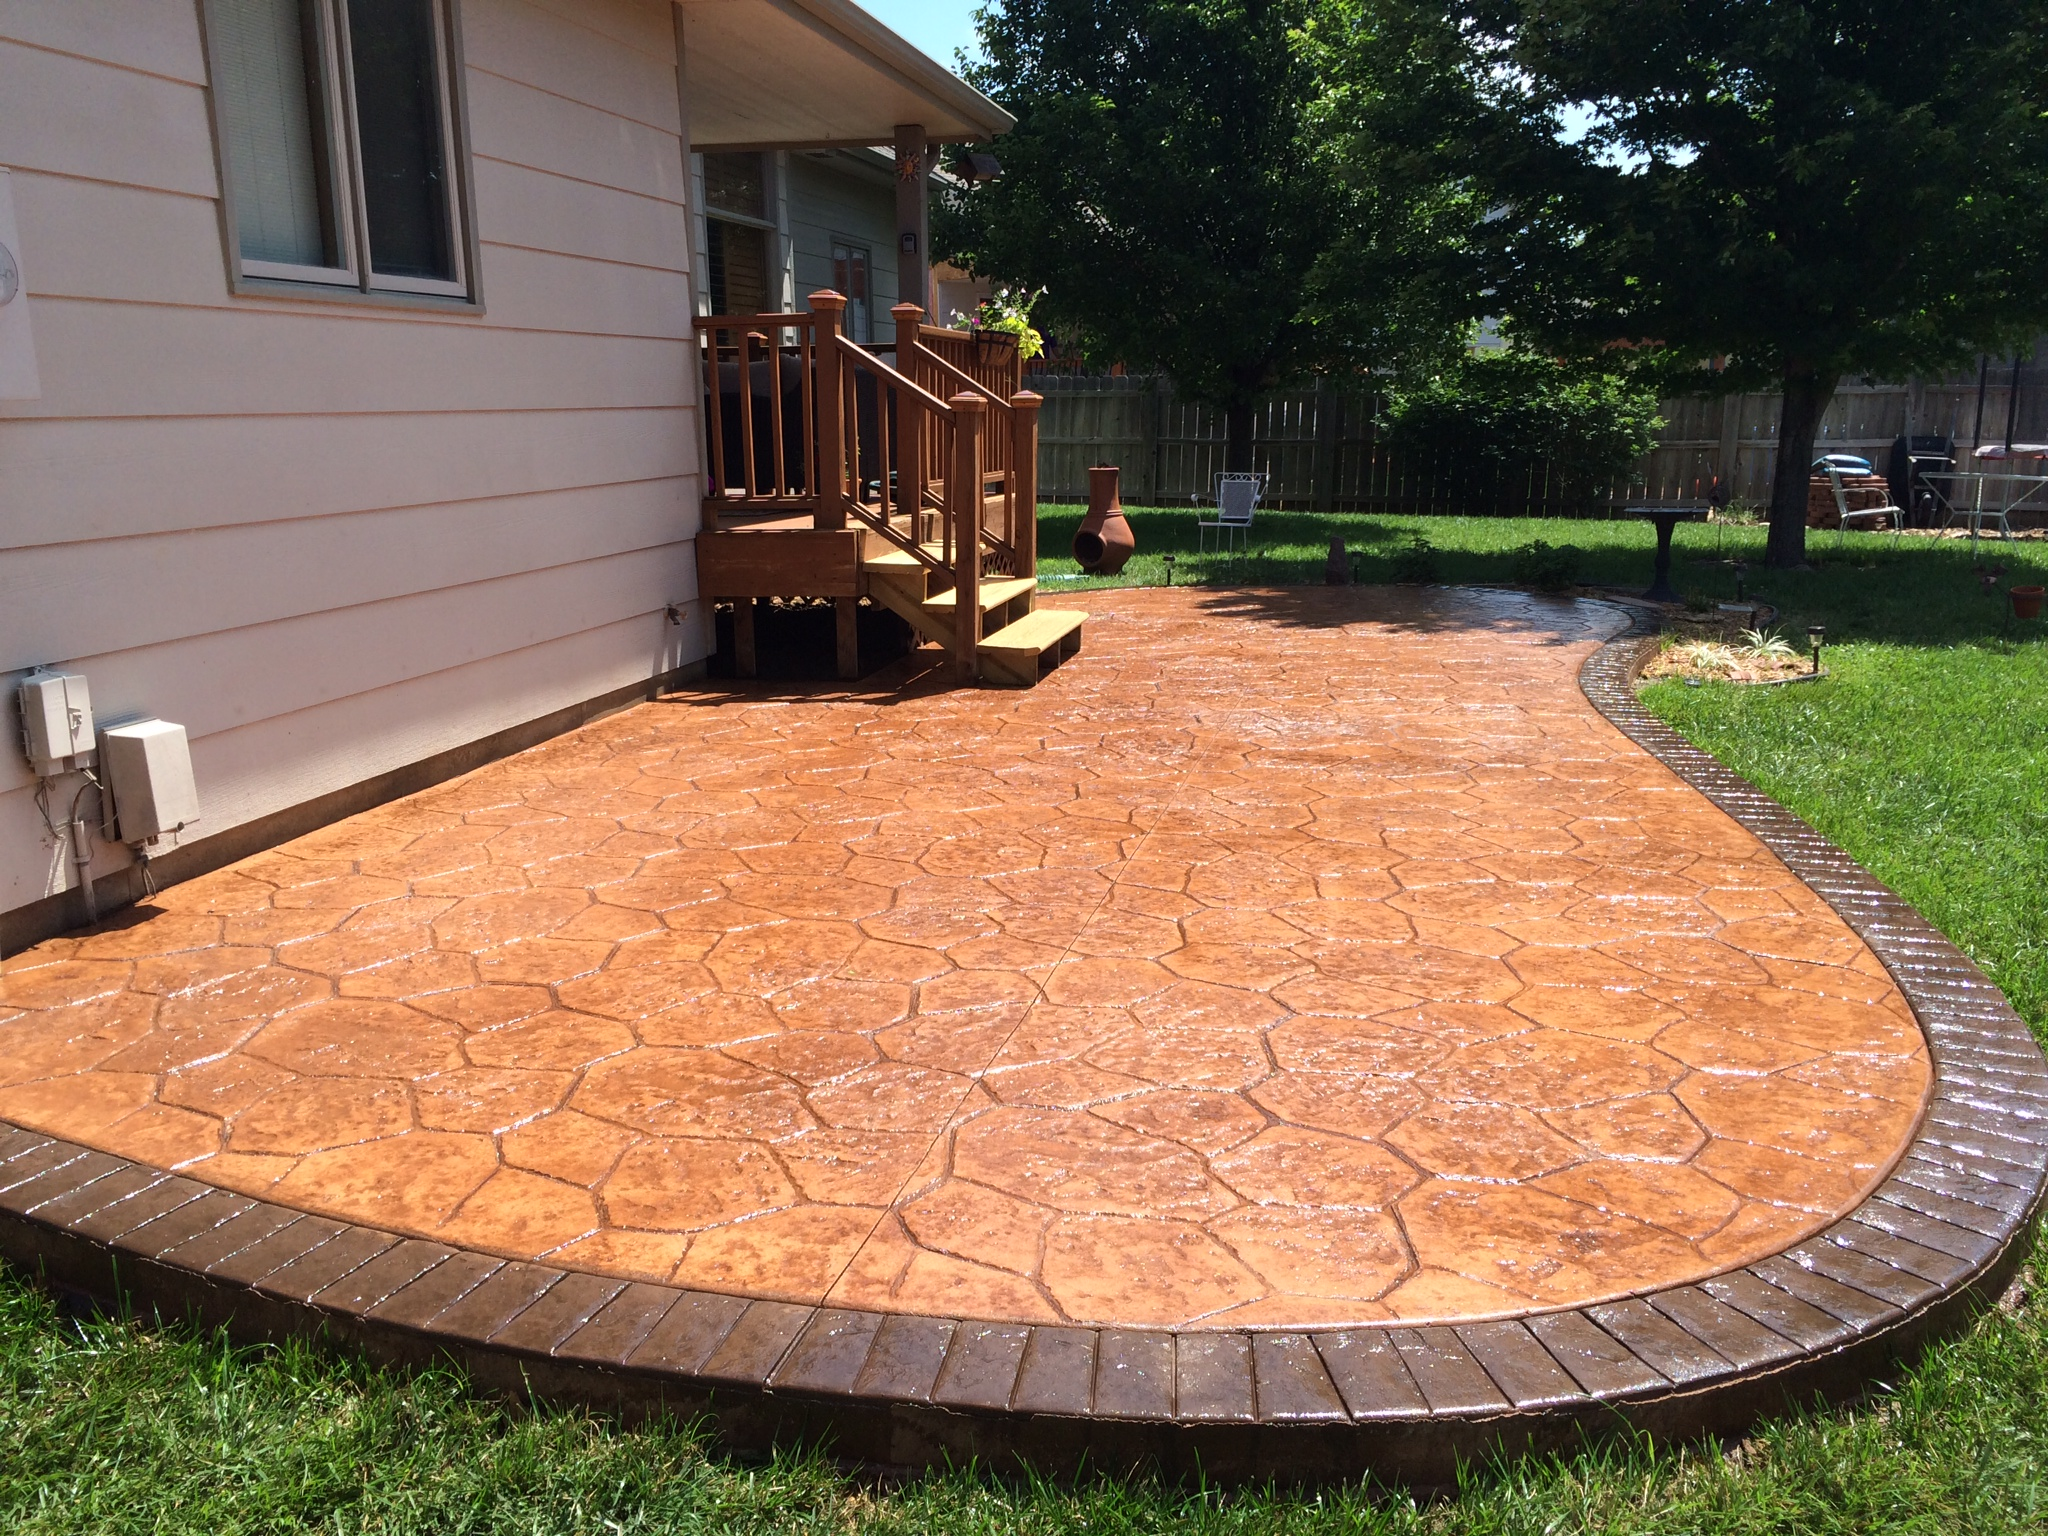 Patio Pavers can transform your backyard | Patio Pavers ... on Yard Paver Ideas  id=69305